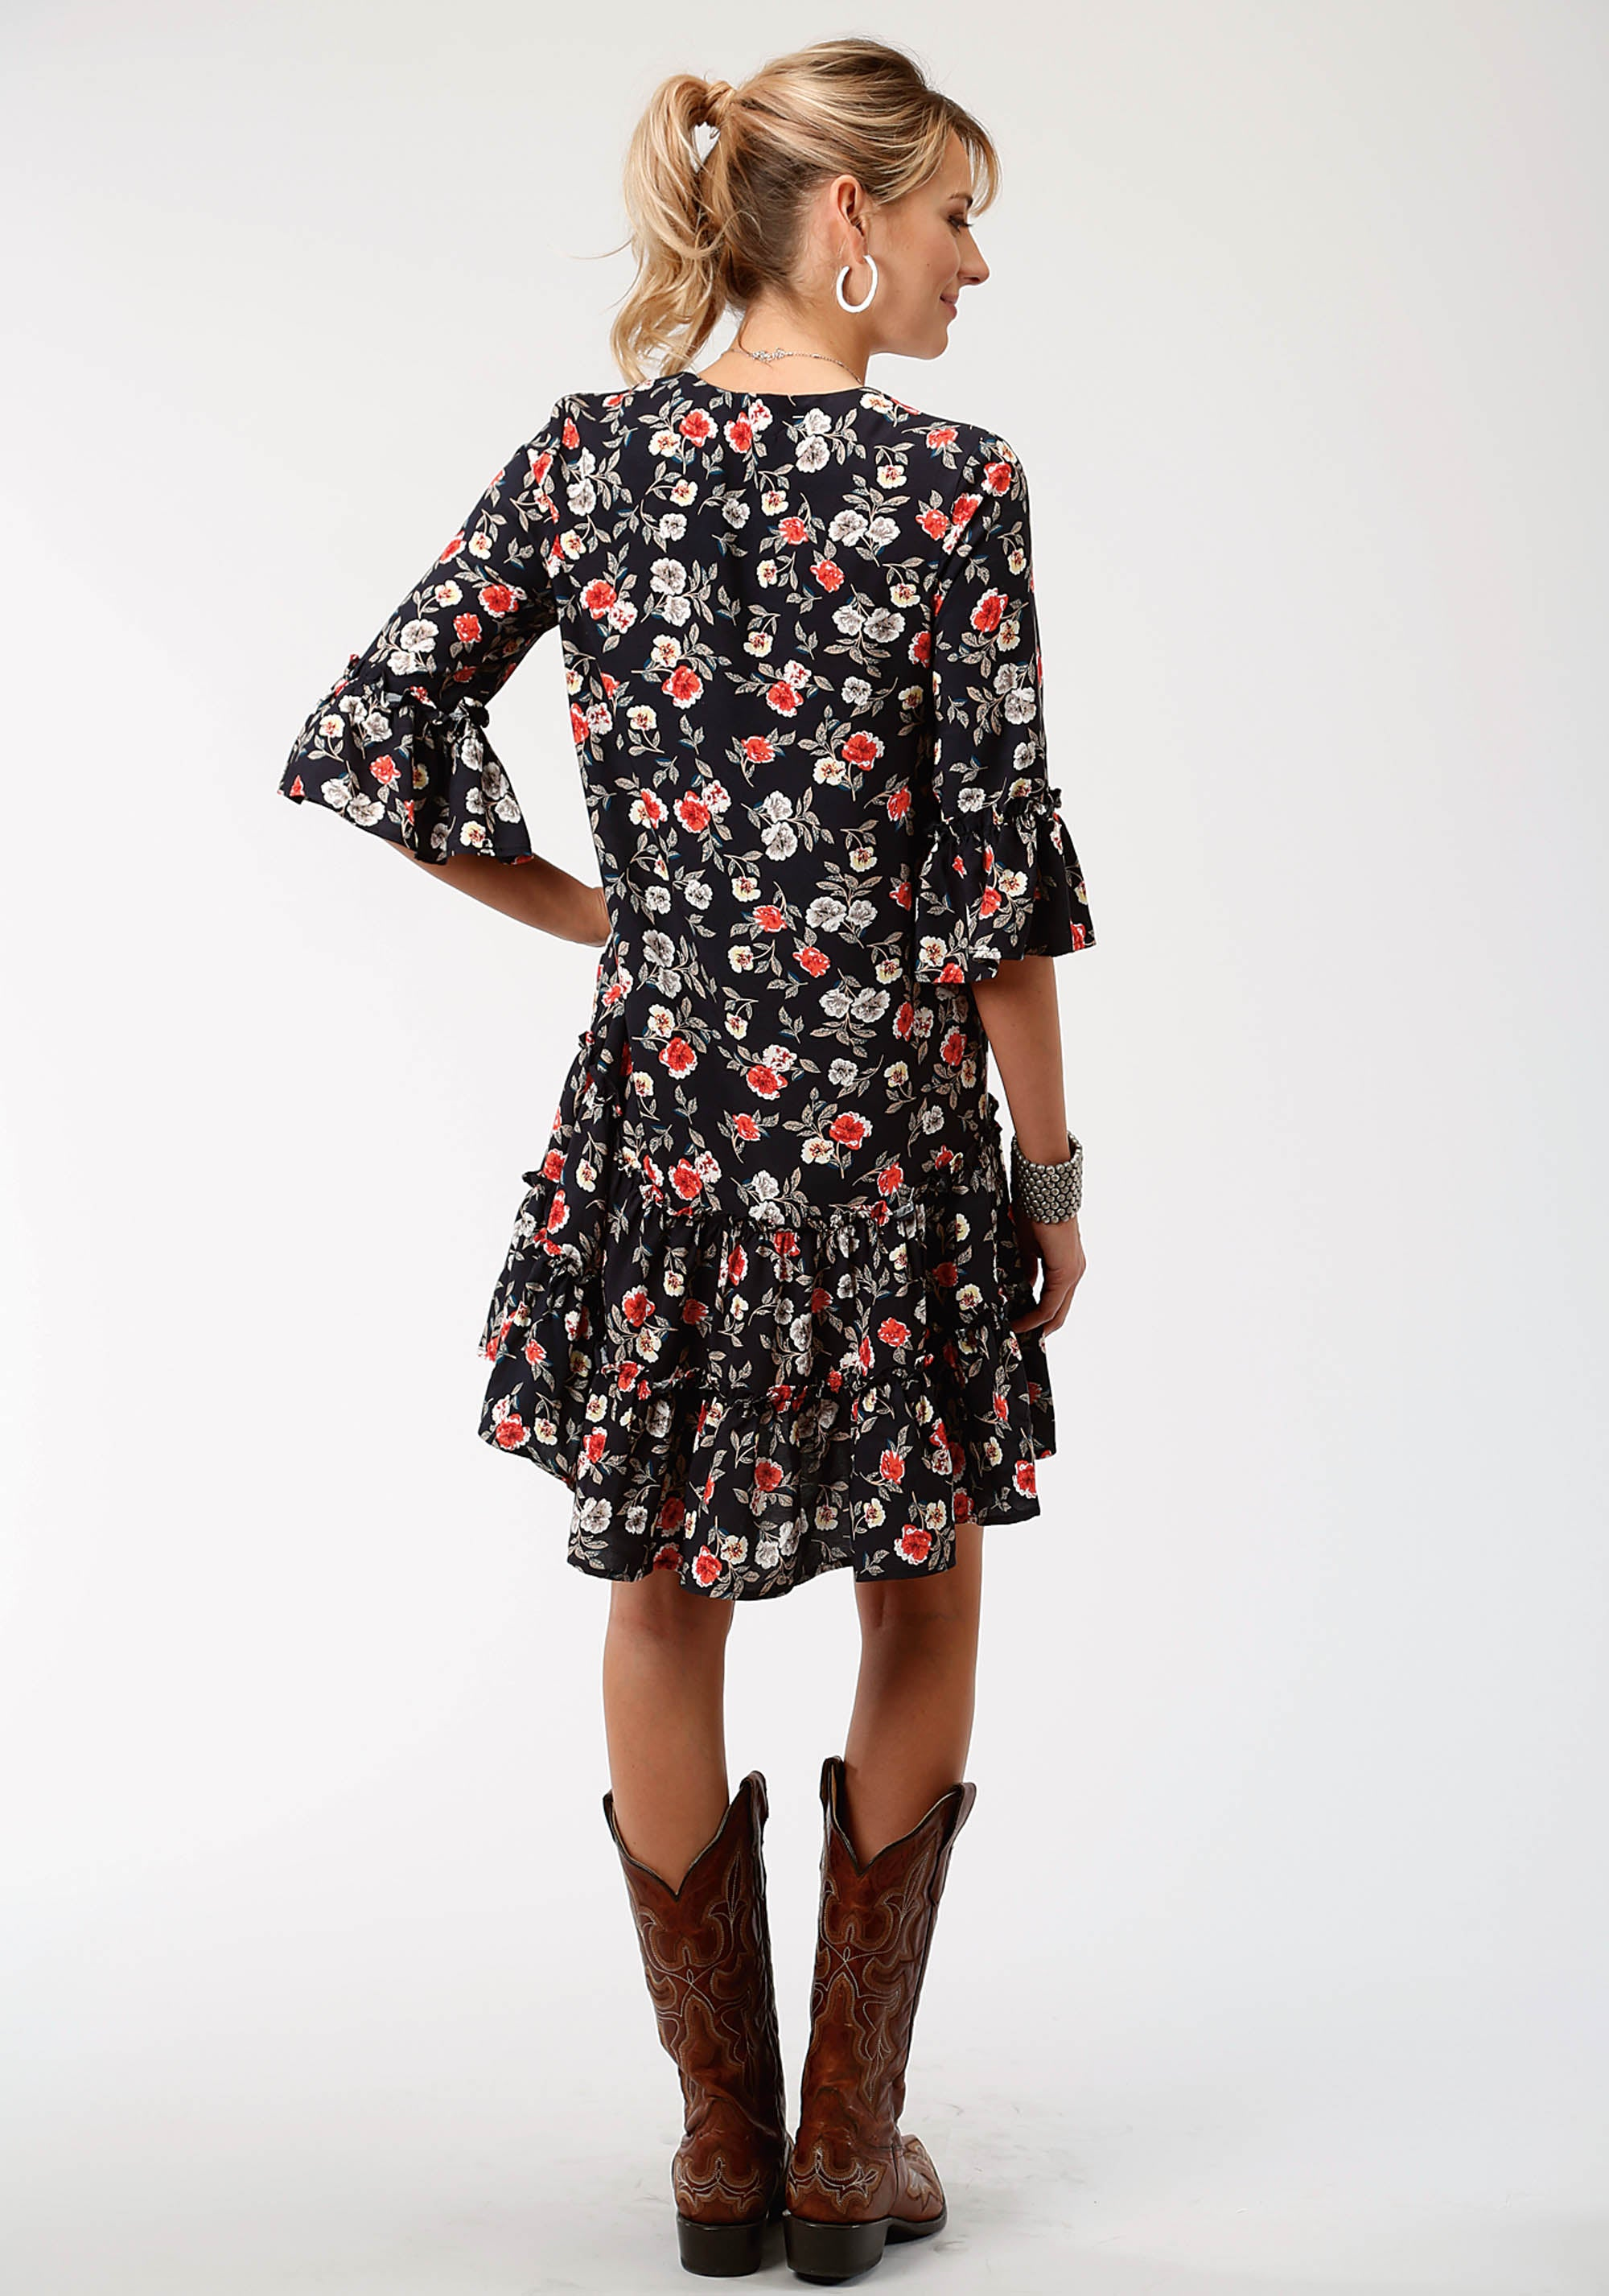 ROPER WOMENS BLACK 6127 FLORAL PRINT RAYON TIERED DRESS STUDIO WEST- GYPSY ROSES LONG SLEEVE DRESS